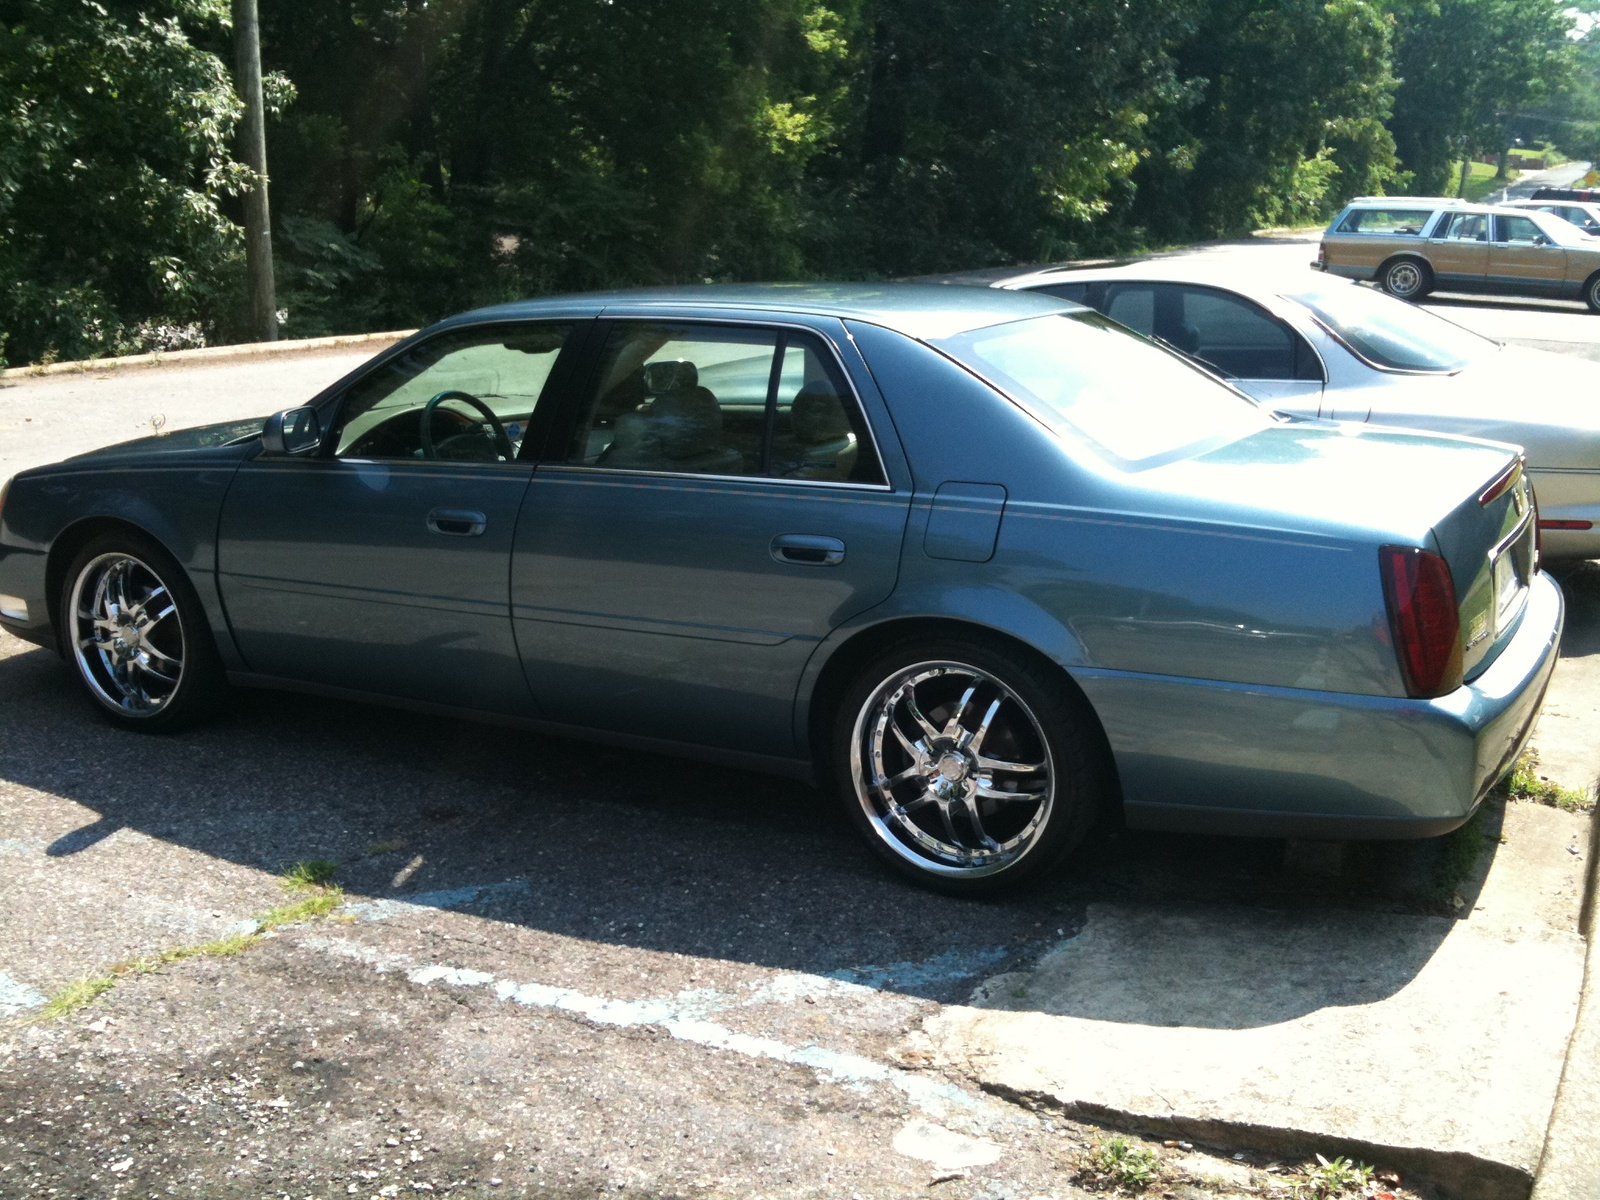 2000 Cadillac DeVille with Rims